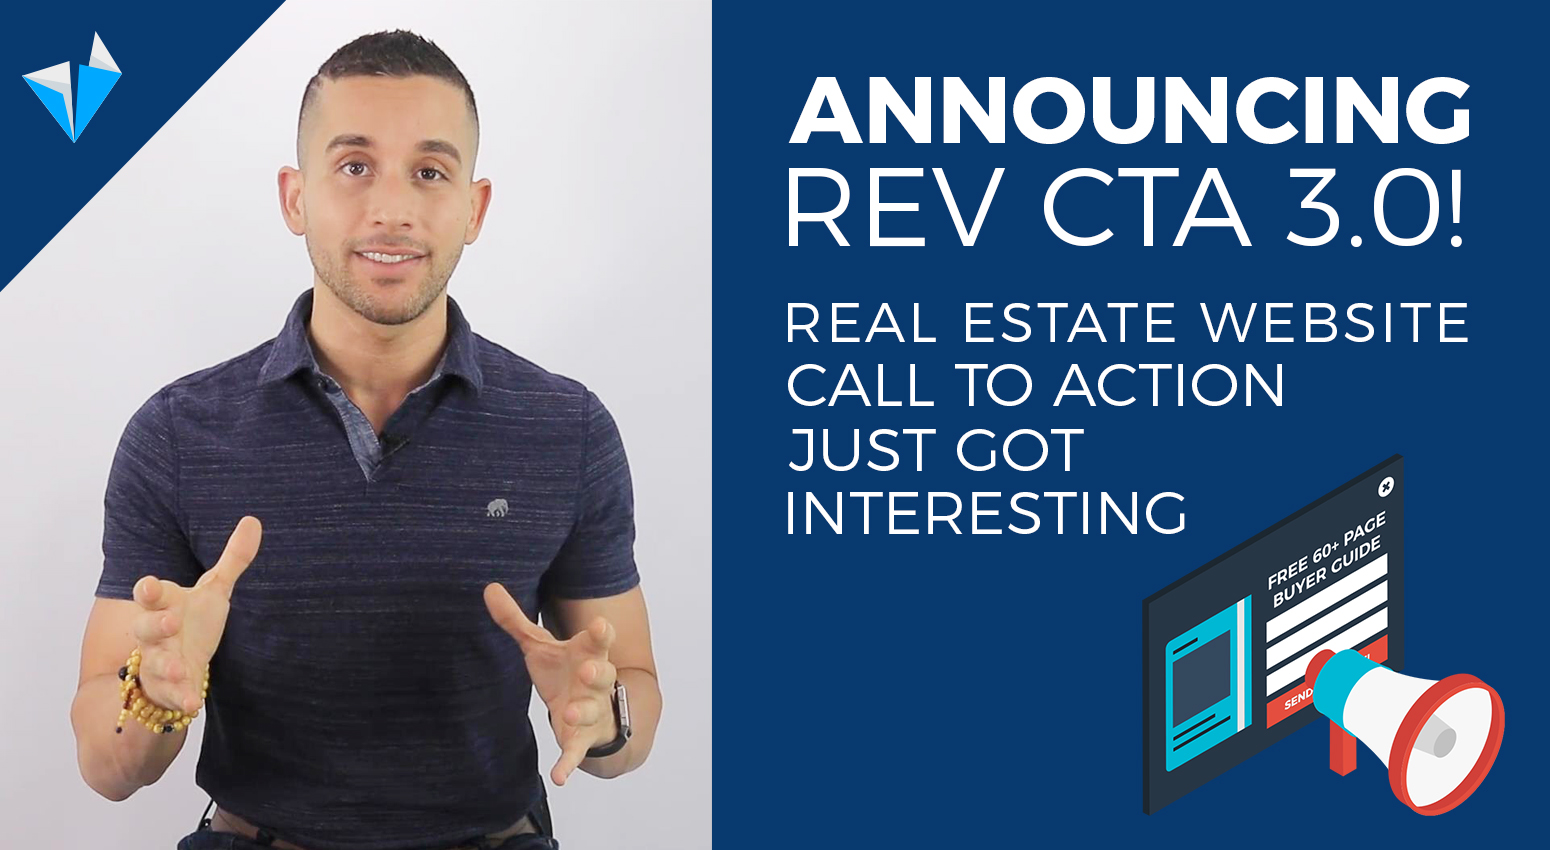 Insanely Effective Real Estate Website Call To Action's w/ REV CTA 3.0™!